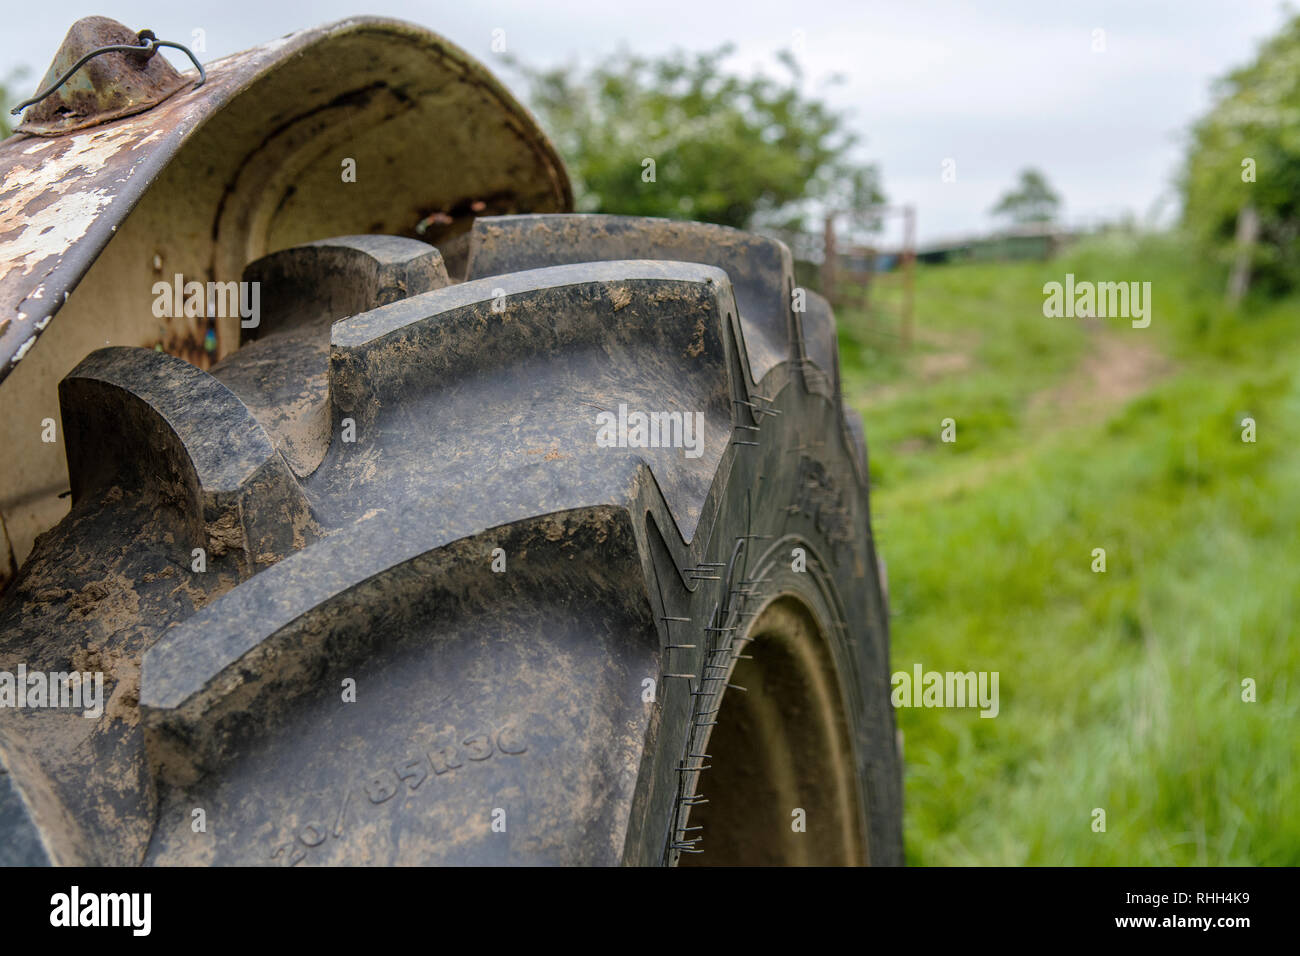 Tractor Tyre - Stock Image